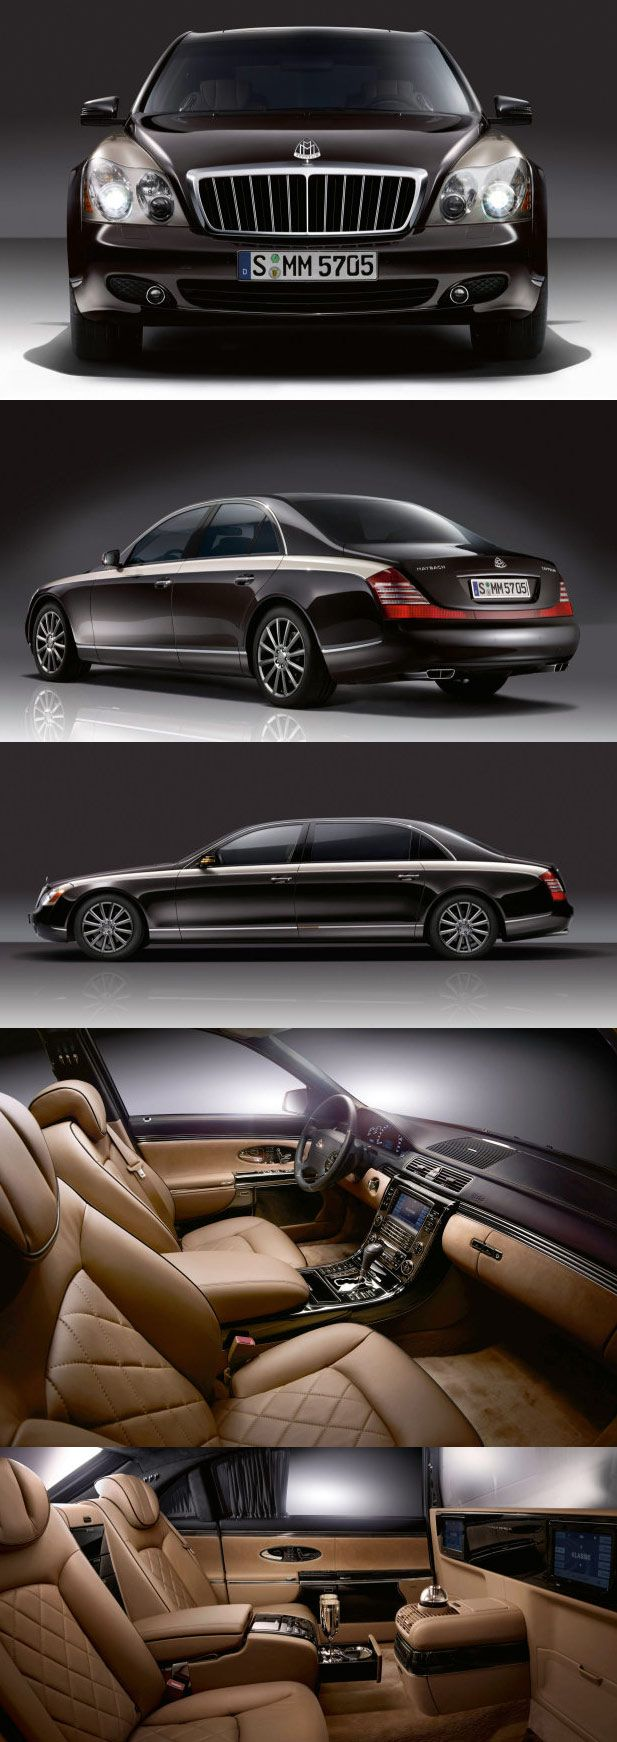 Maybach zeppelin car lover visit us at www rvinyl com rvinyl